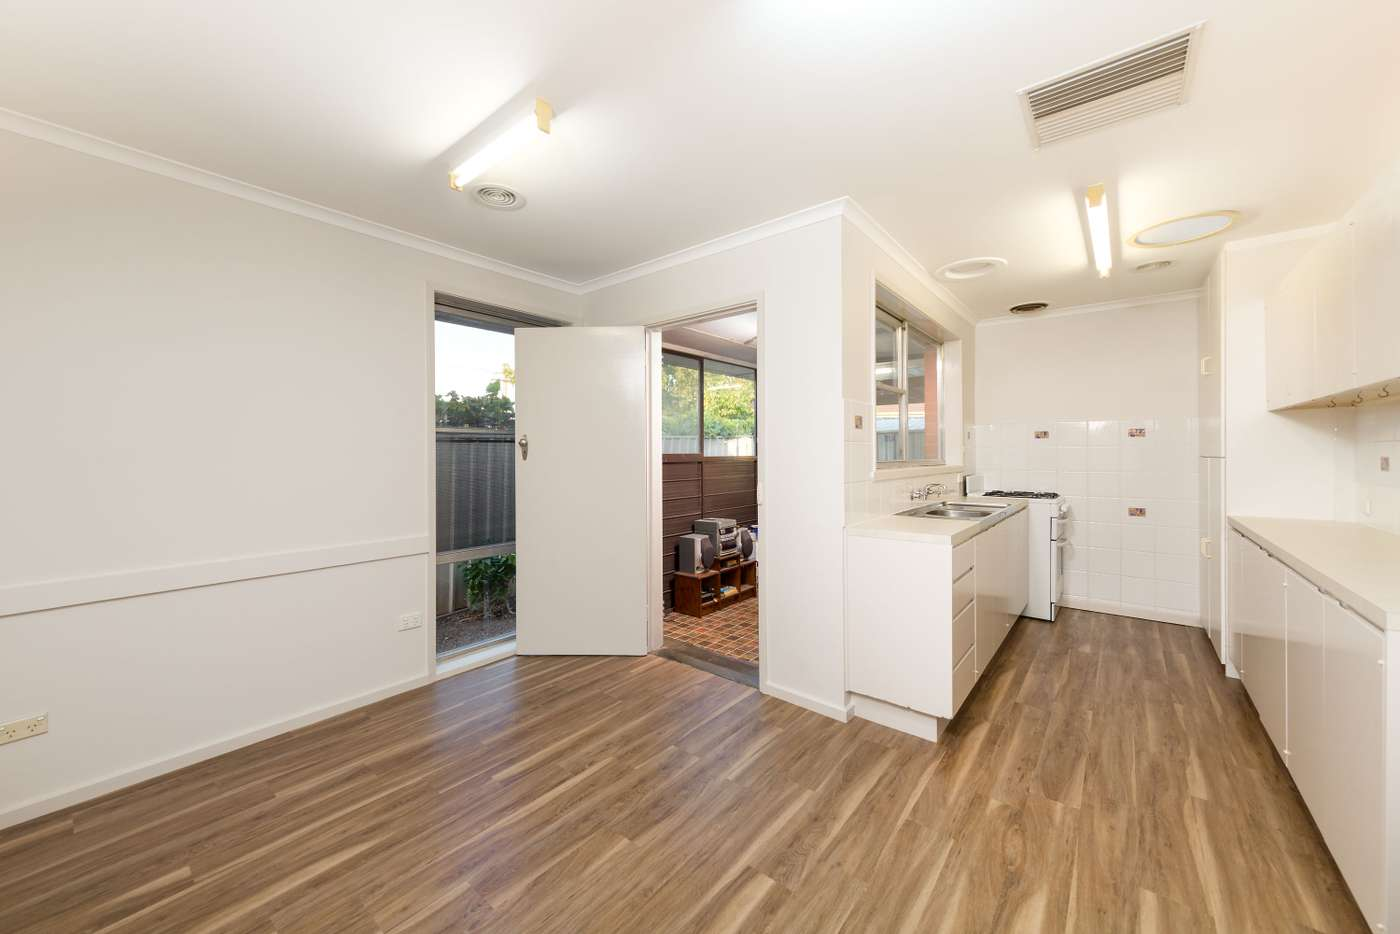 Sixth view of Homely house listing, 108 GRALEN STREET, Wodonga VIC 3690